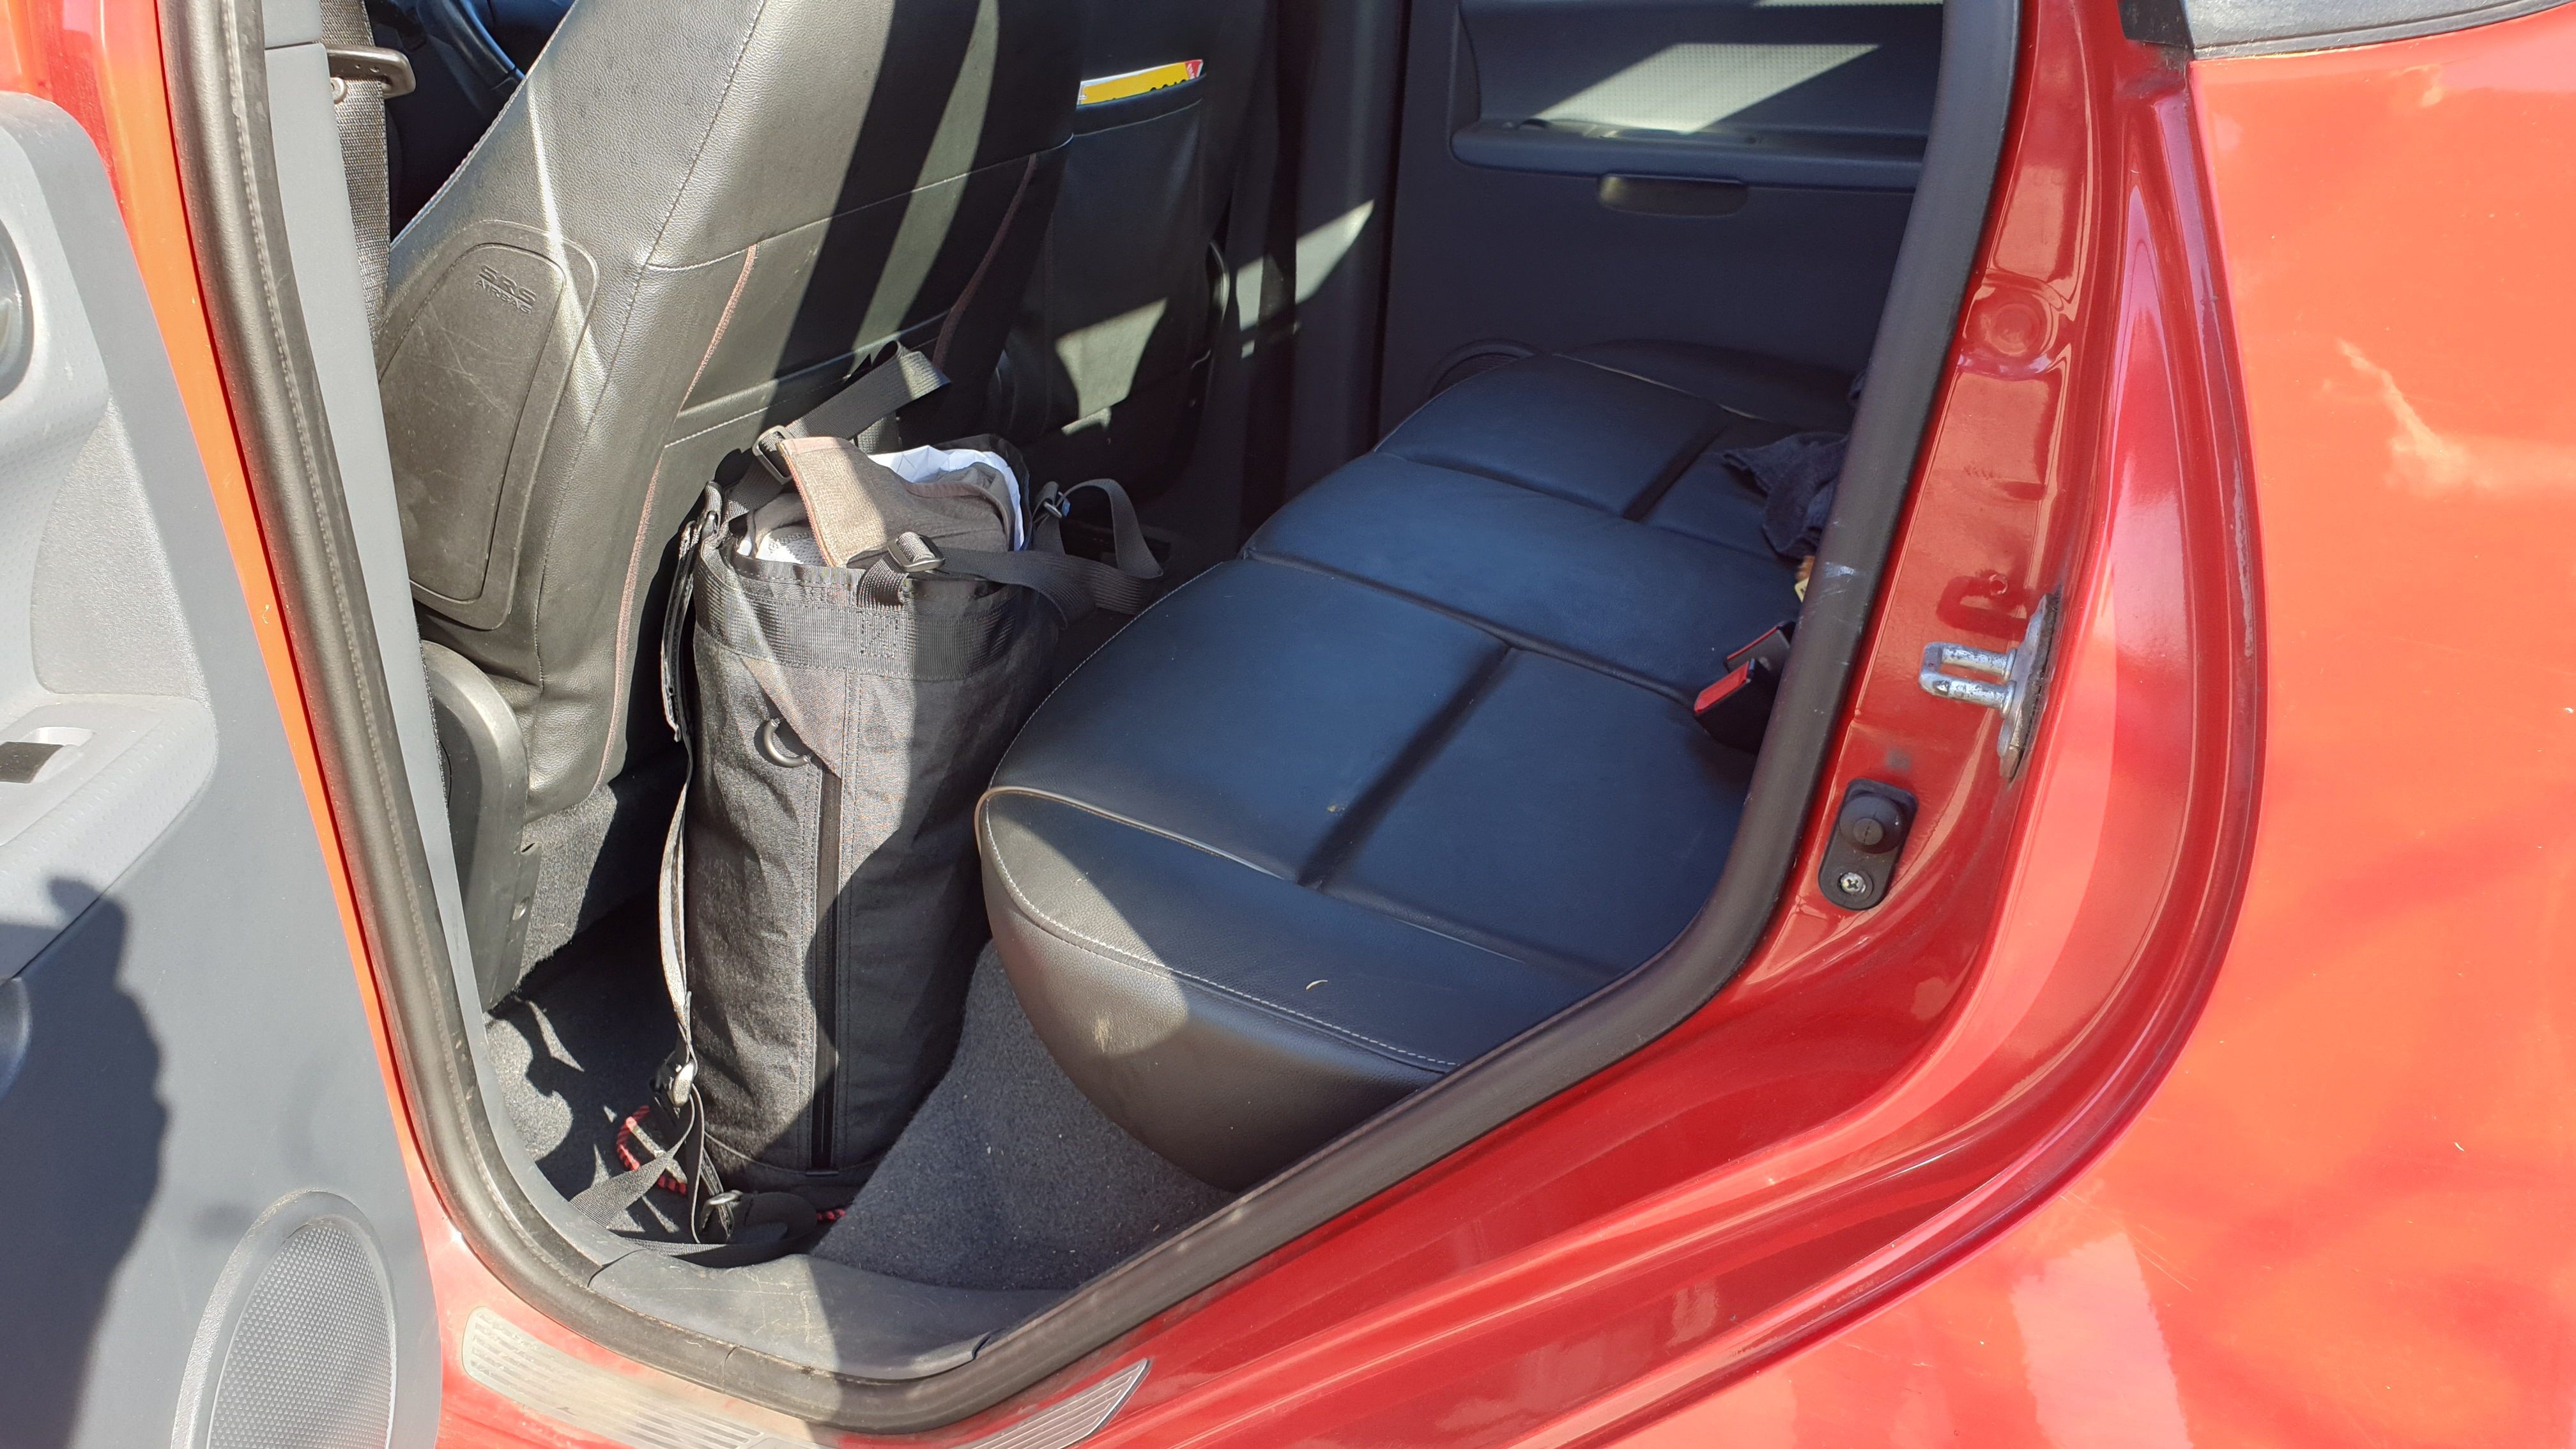 Remote Equipment Bravo 18 bag review in car storage luggage travel backpack